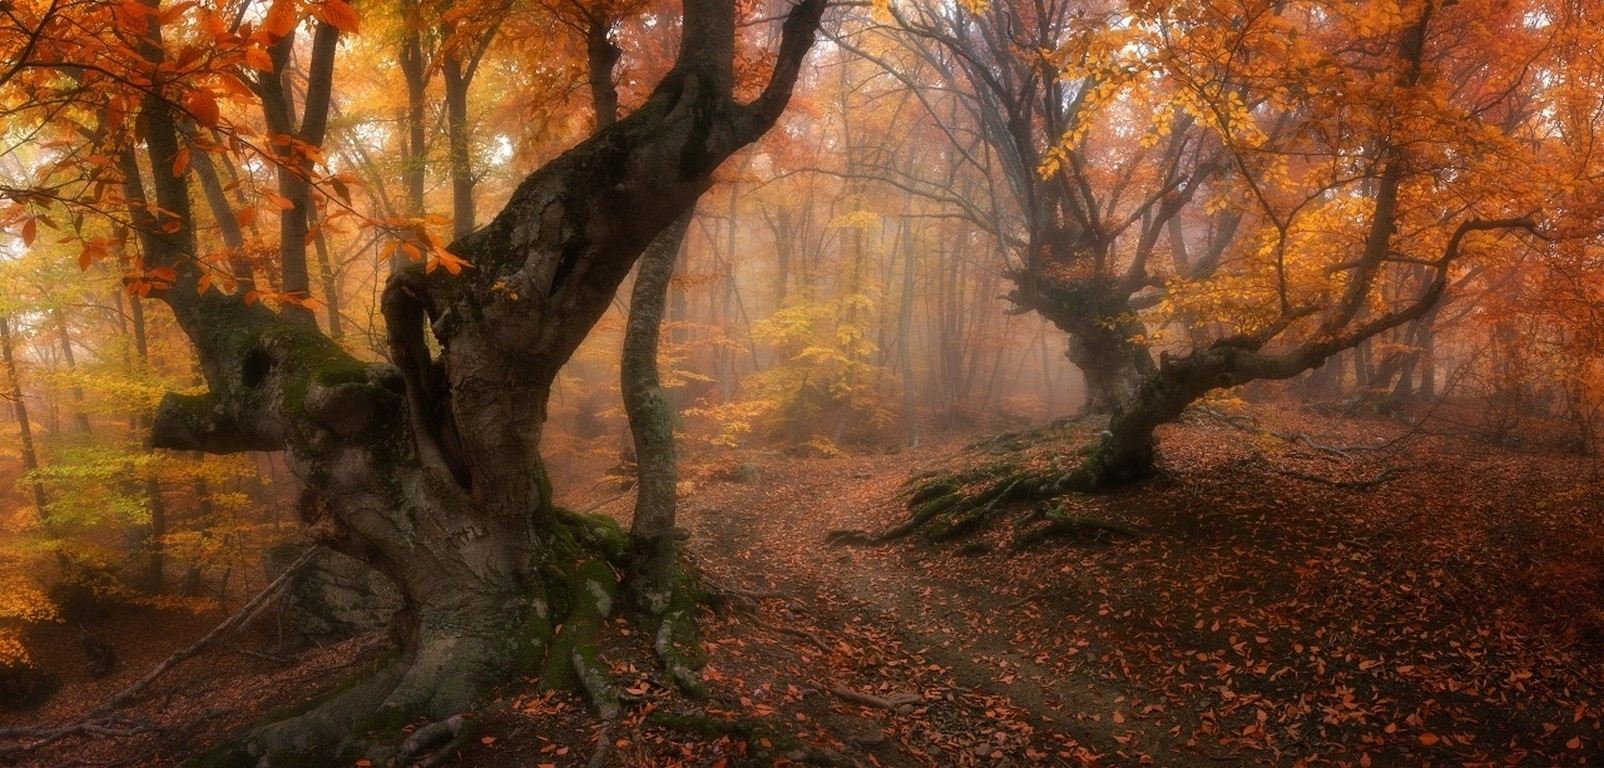 Fall Leaves Hd Desktop Wallpaper Forest Magic Fall Trees Leaves Mist Path Roots